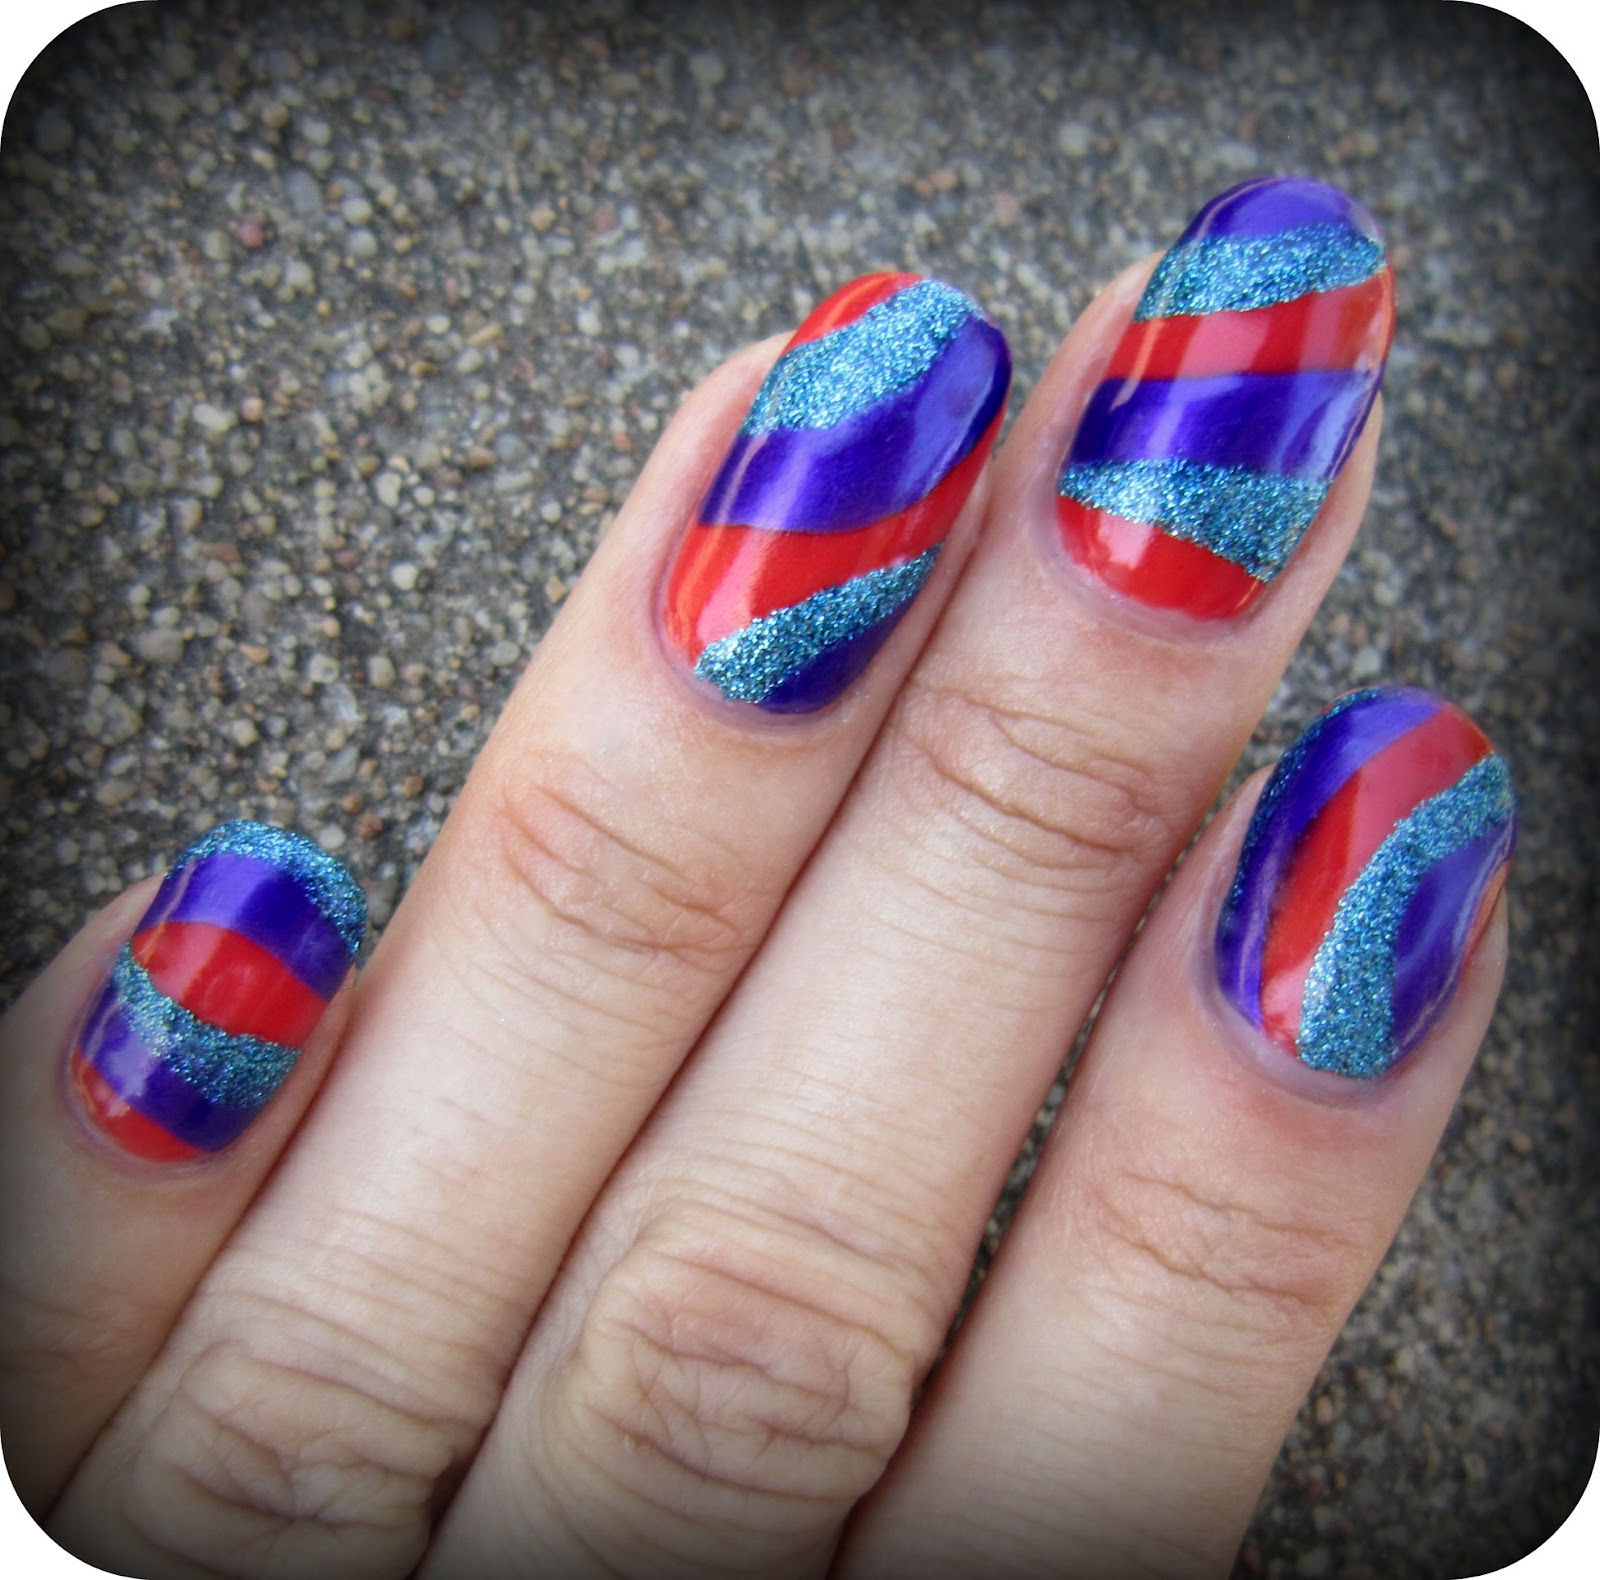 Concrete And Nail Polish: Striped Nail Art